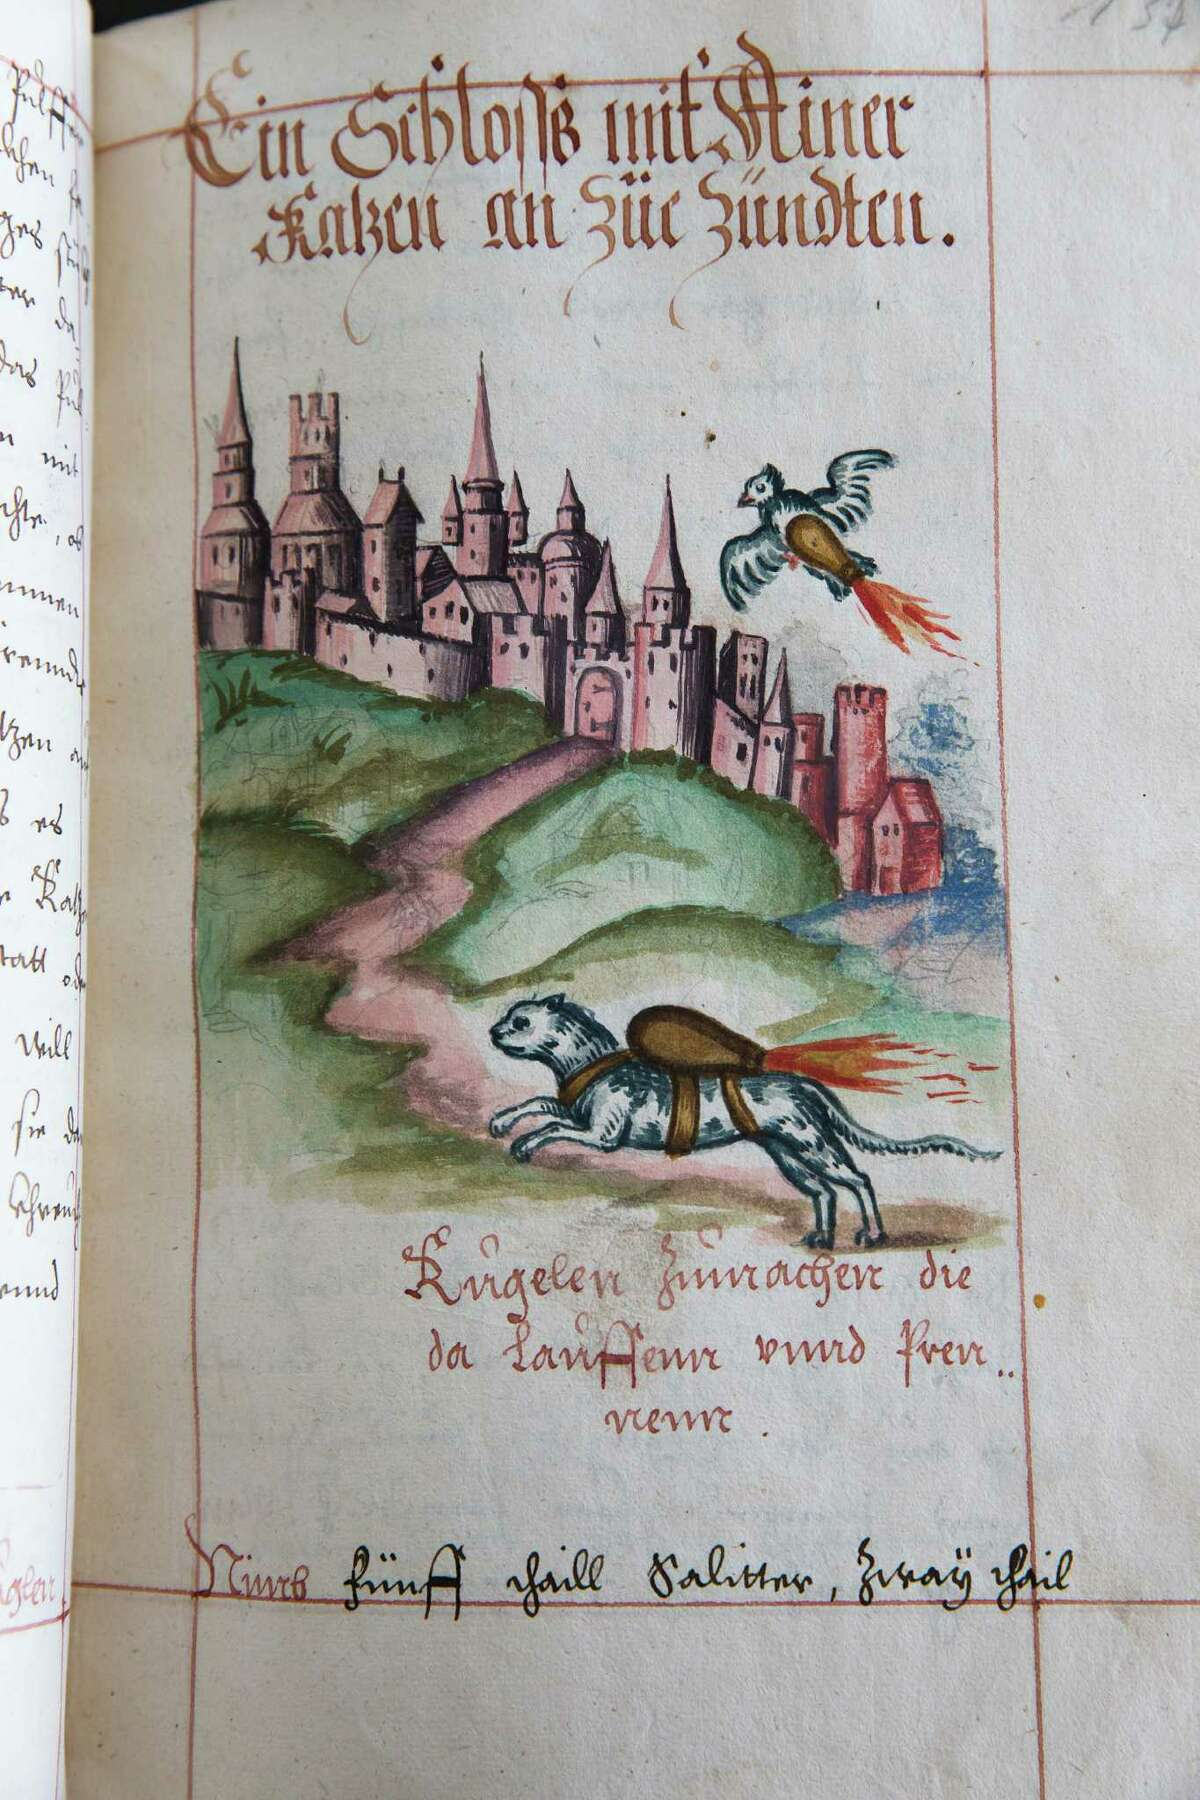 In this Tuesday, March 4, 2014 photo is an illustration from a manual by 16th century artillery master Franz Helm at the University of Pennsylvania library in Philadelphia. The manual on artillery and siege warfare depicts a cat and dove strapped with bombs to